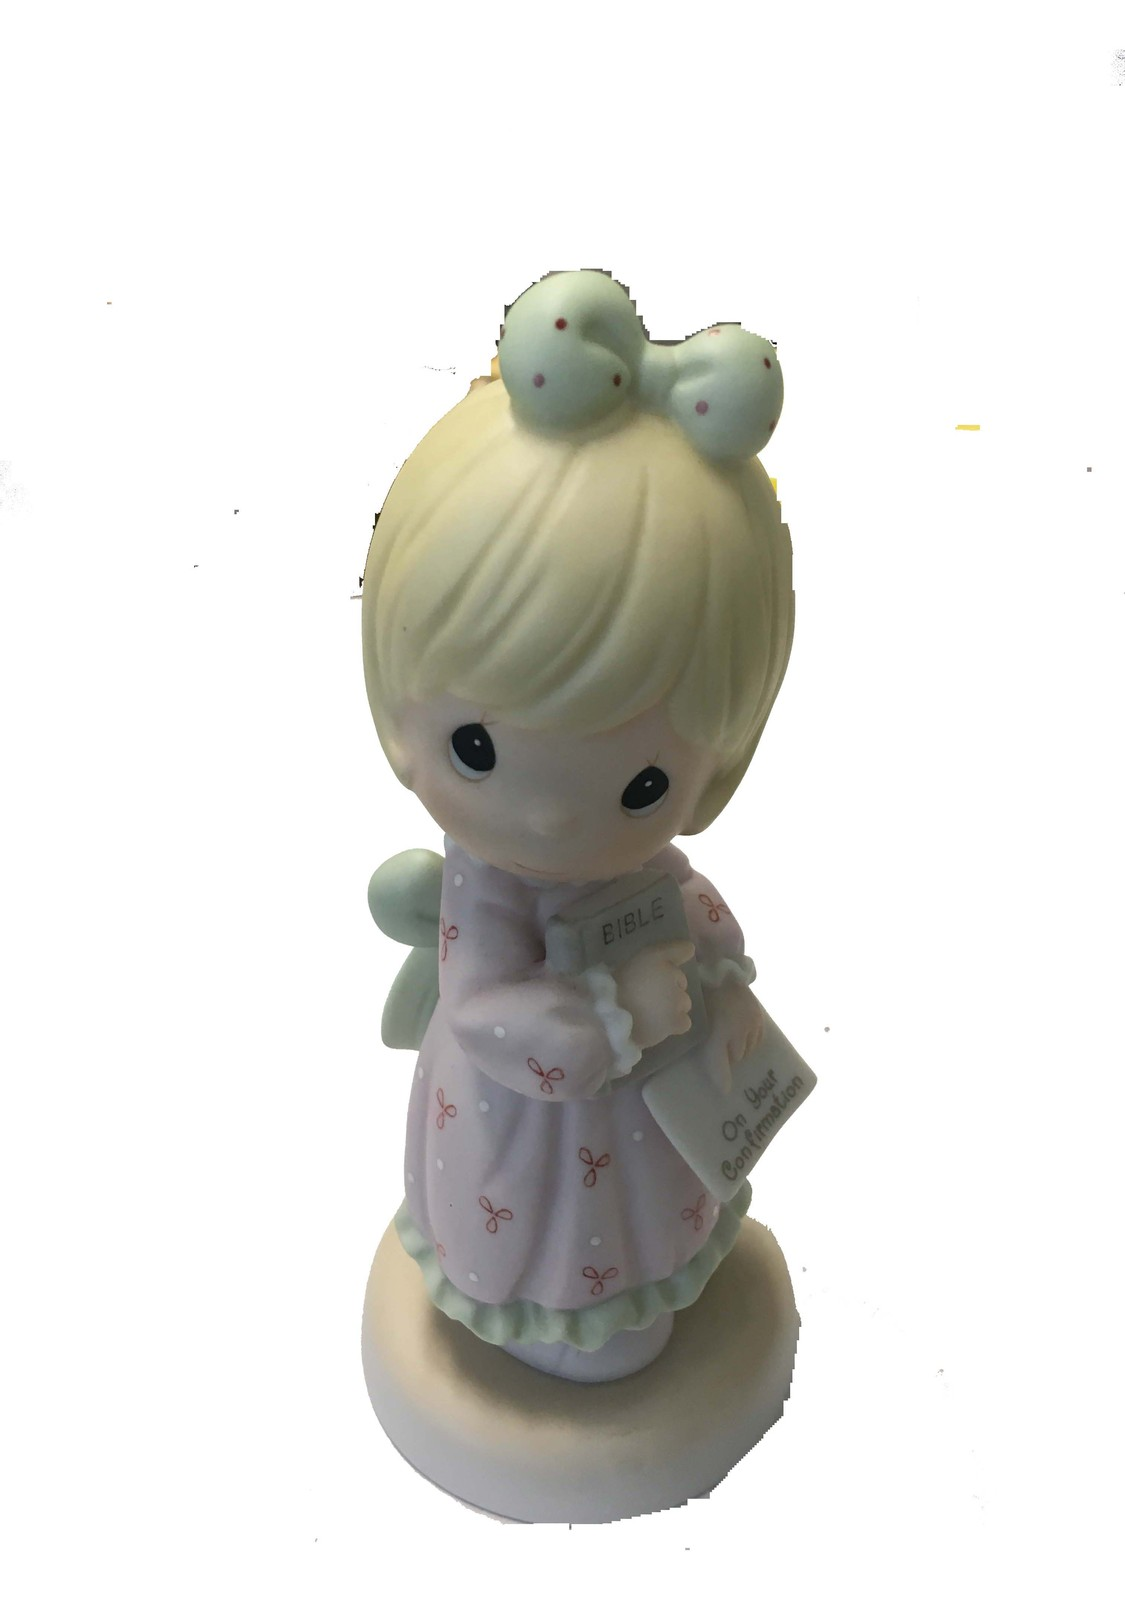 Precious moments confirmed in the lord ceramic ornament